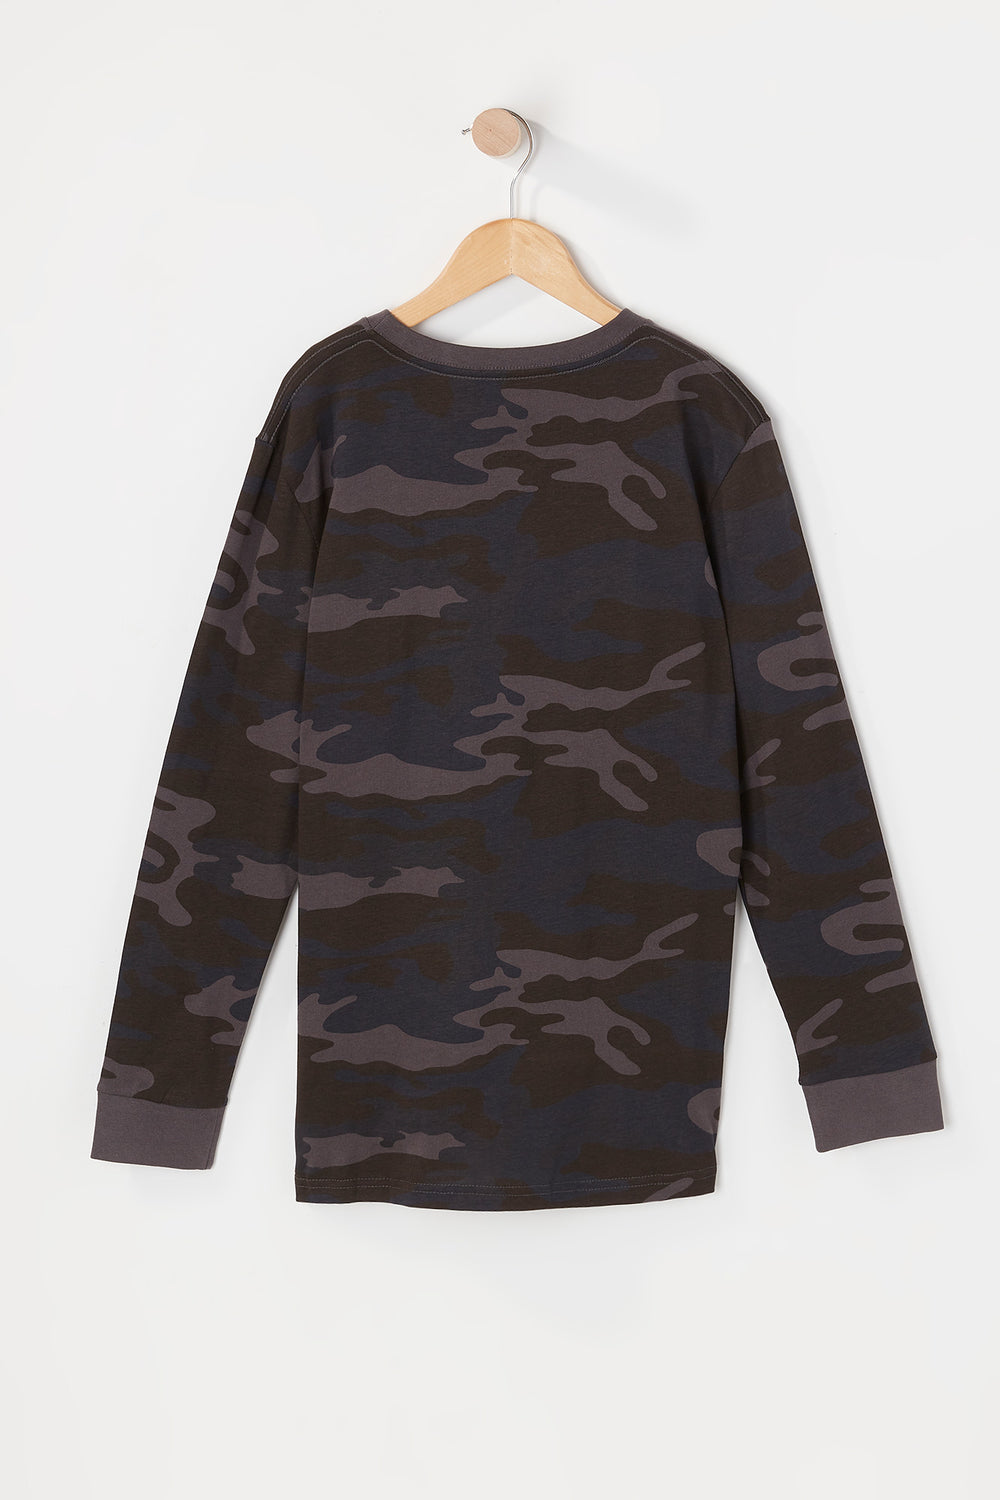 Zoo York Youth Camo Long Sleeve Top Black with White